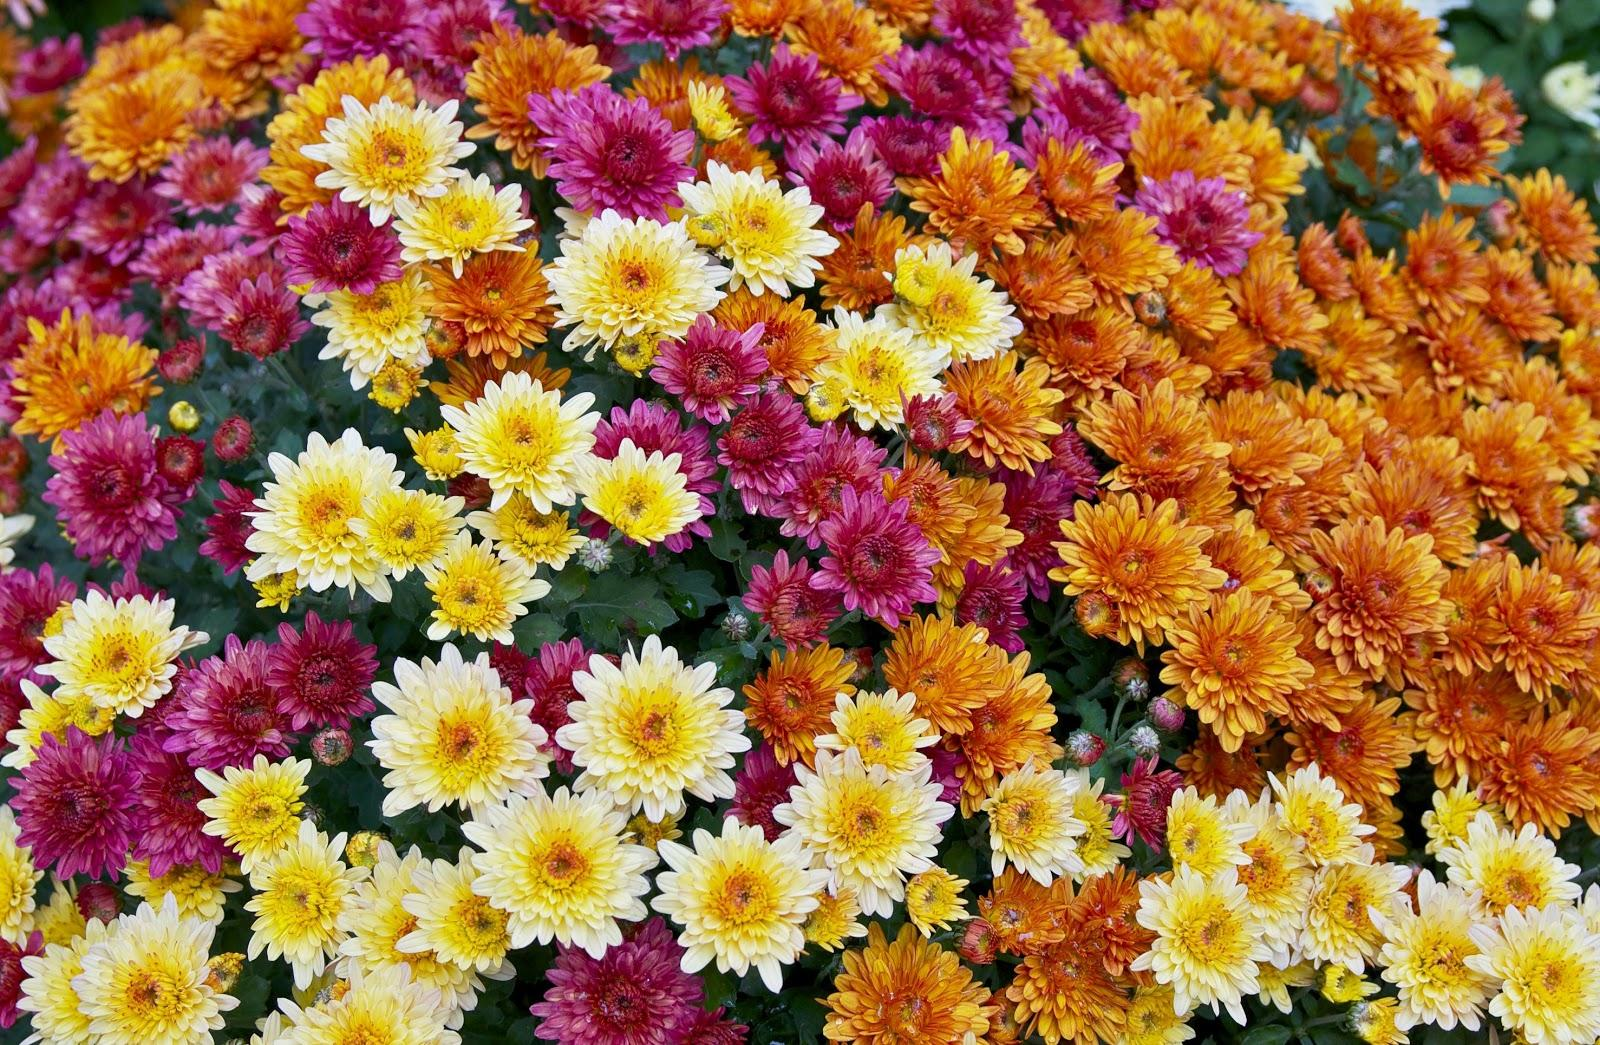 Chrysanthemum flowers are the source of pyrethrins, widely available insecticides that may be toxic to bees and fish. Photo: Wikimedia Commons